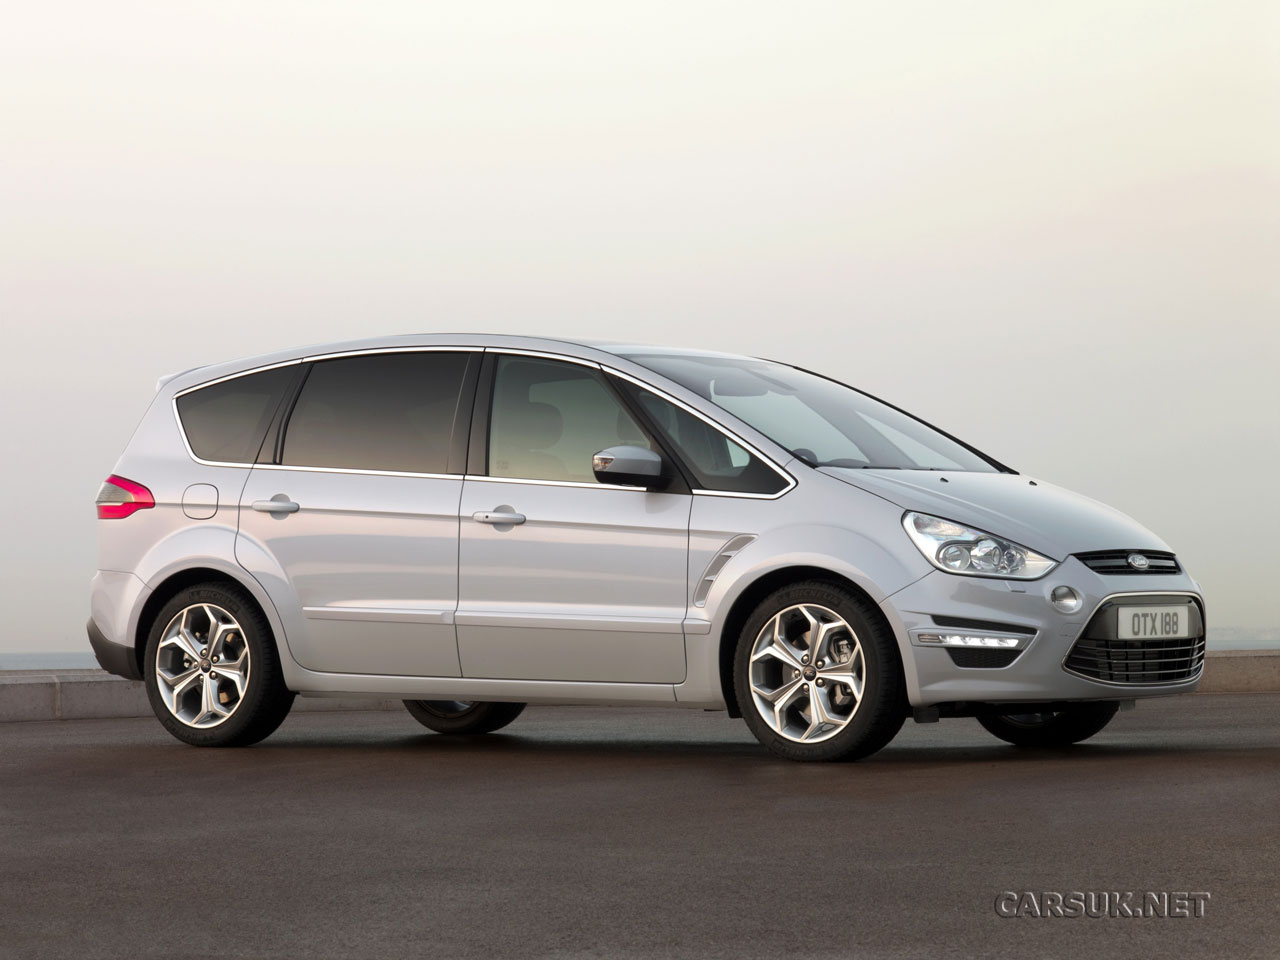 Ford S-Max 2.2 2013 photo - 12